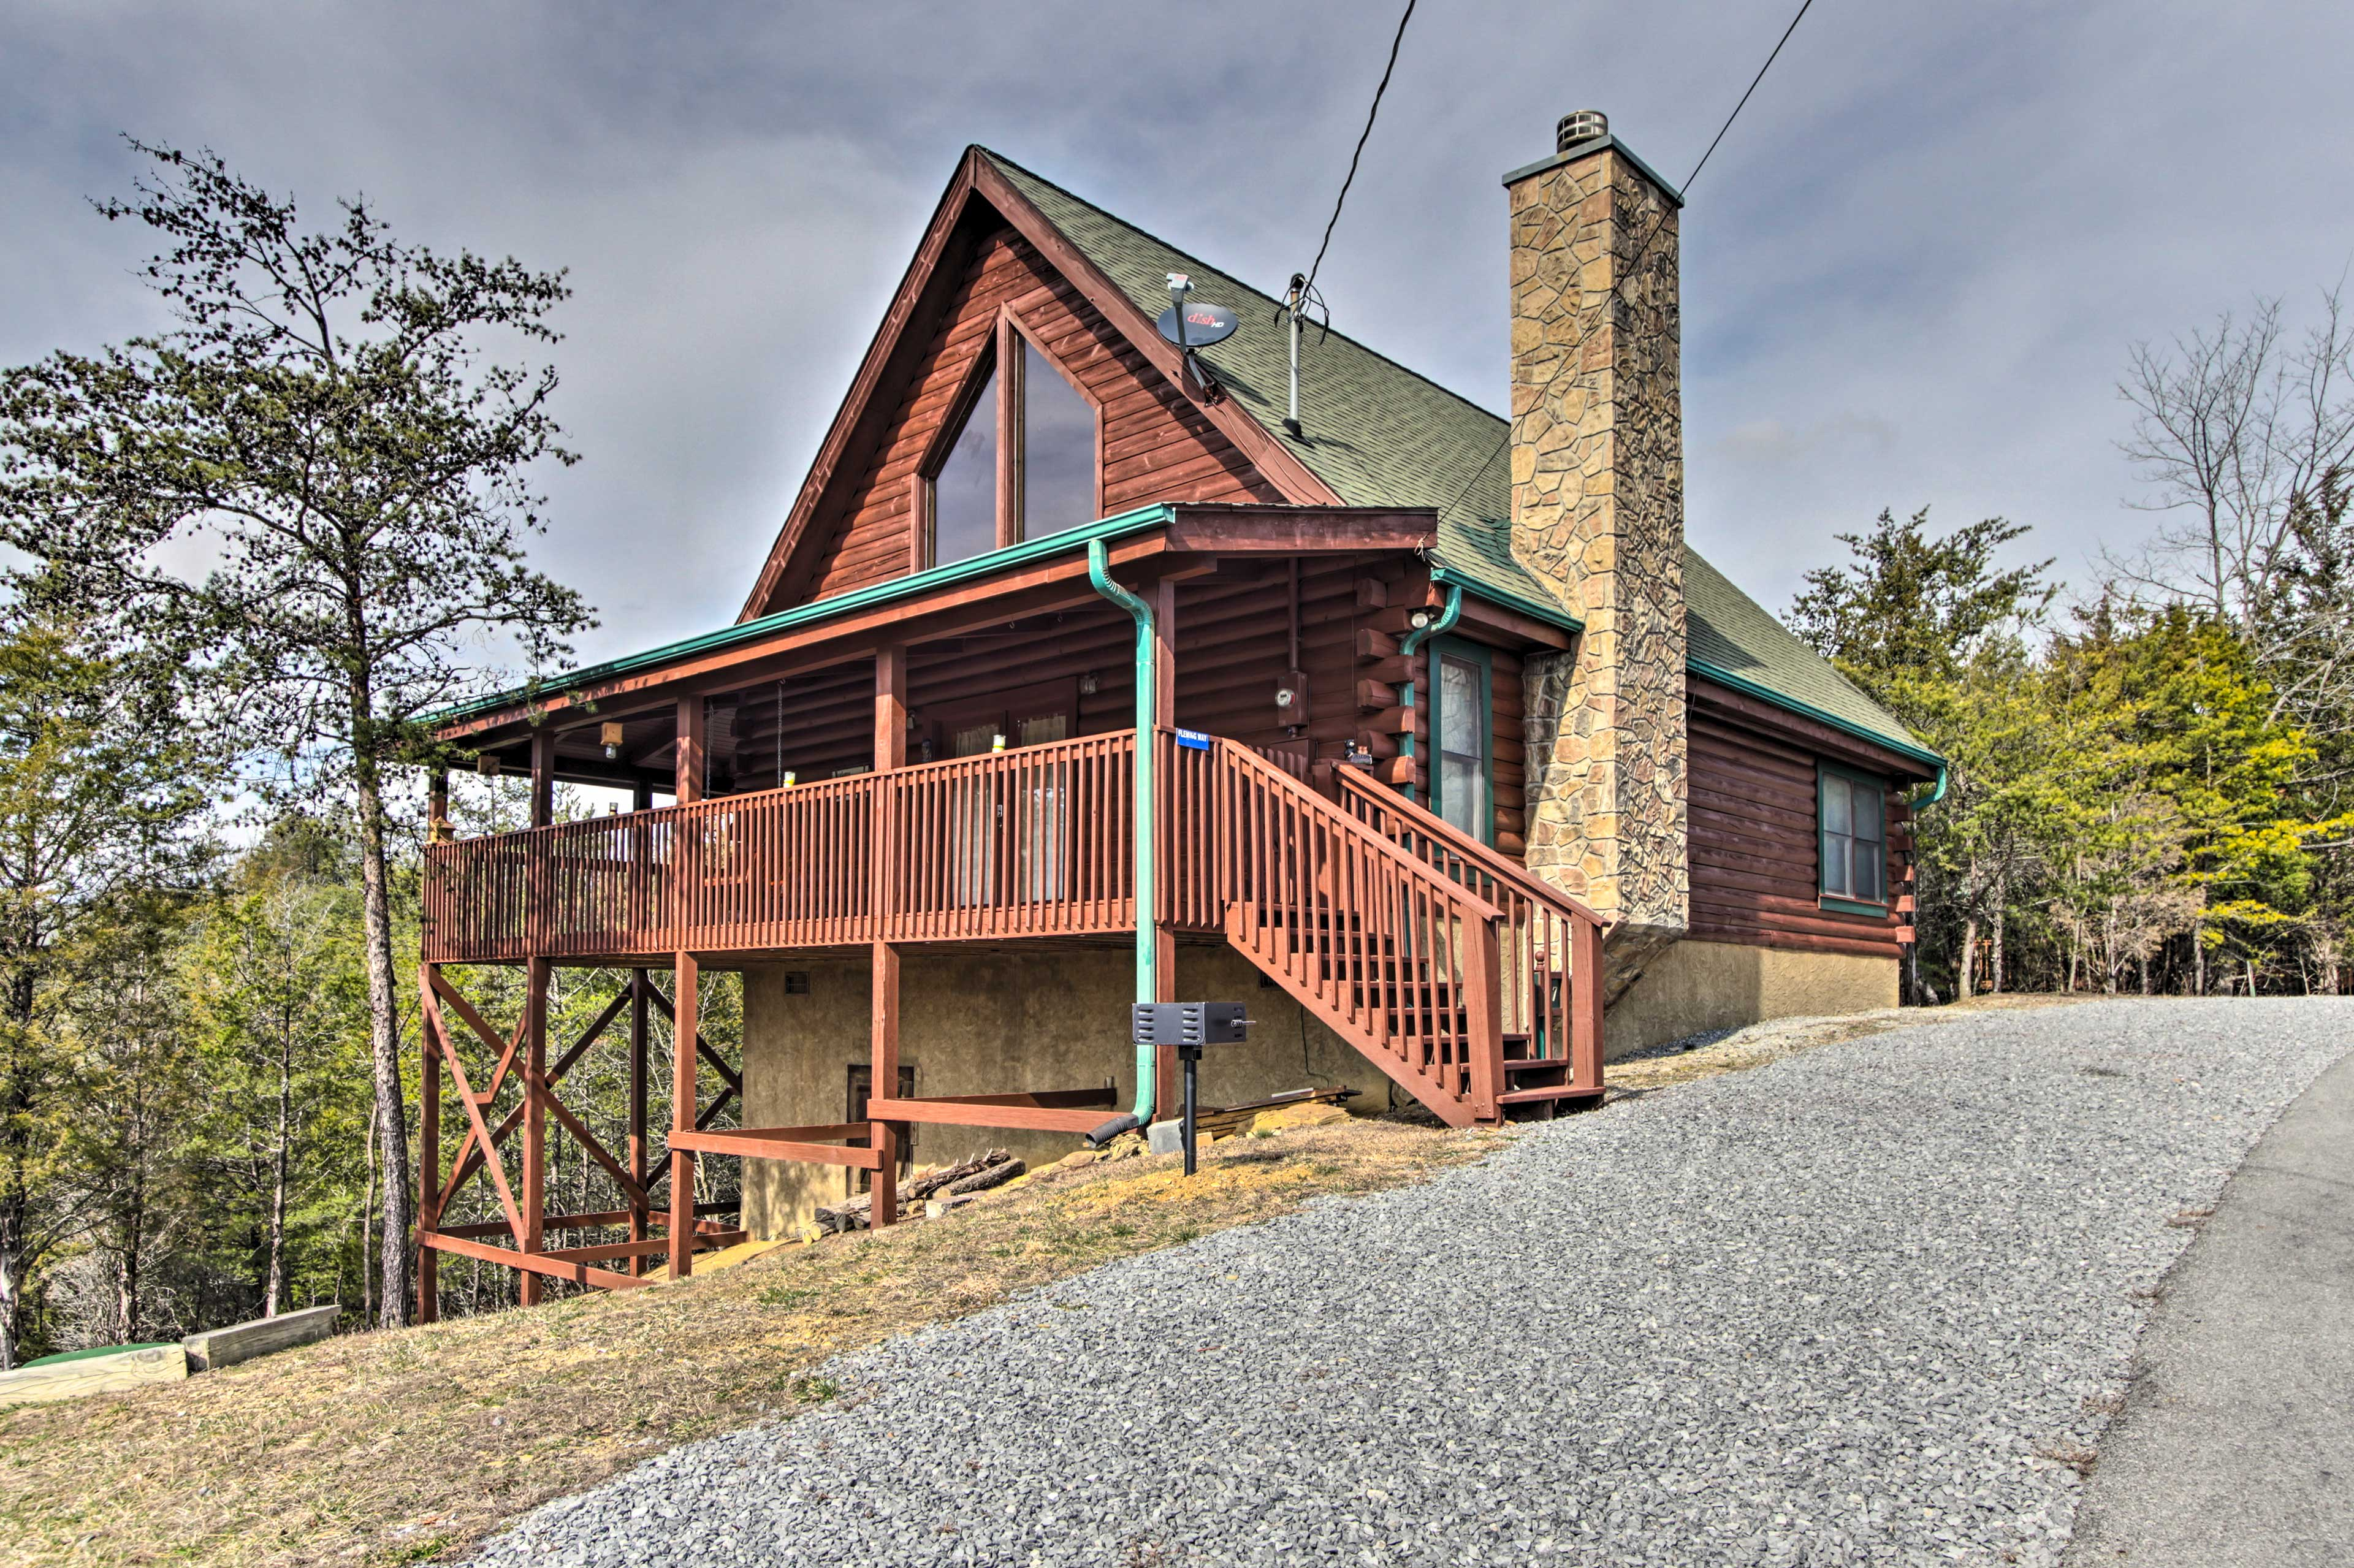 This vacation rental home is part of Douglas Lake Community.